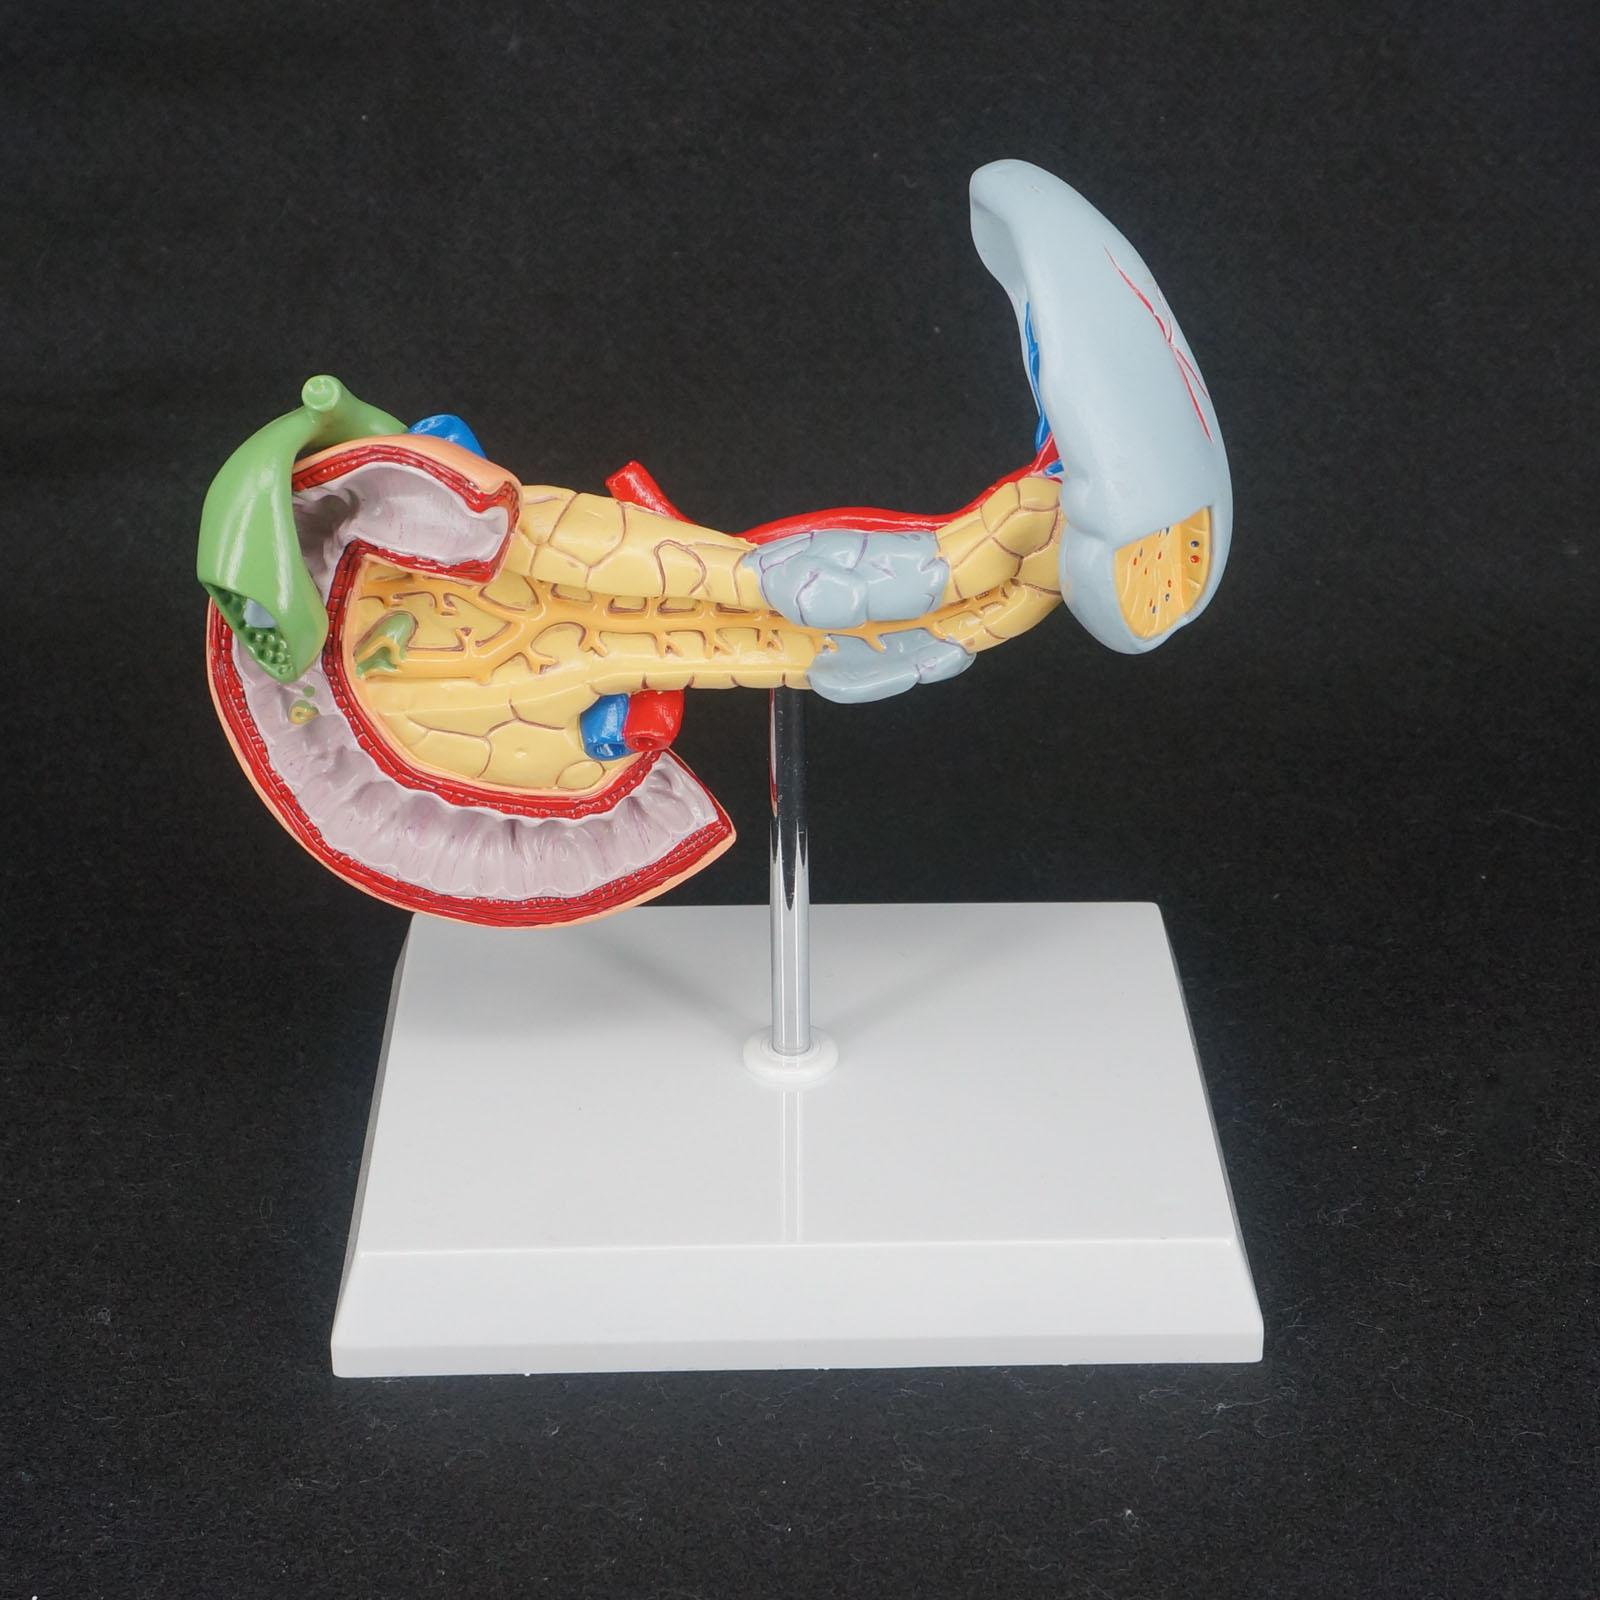 Human Liver Pancreas and Duodenum Anatomical Model Medical Anatomy Teaching Resources human anatomical duodenum gall bladder disease anatomy medical model teaching resources